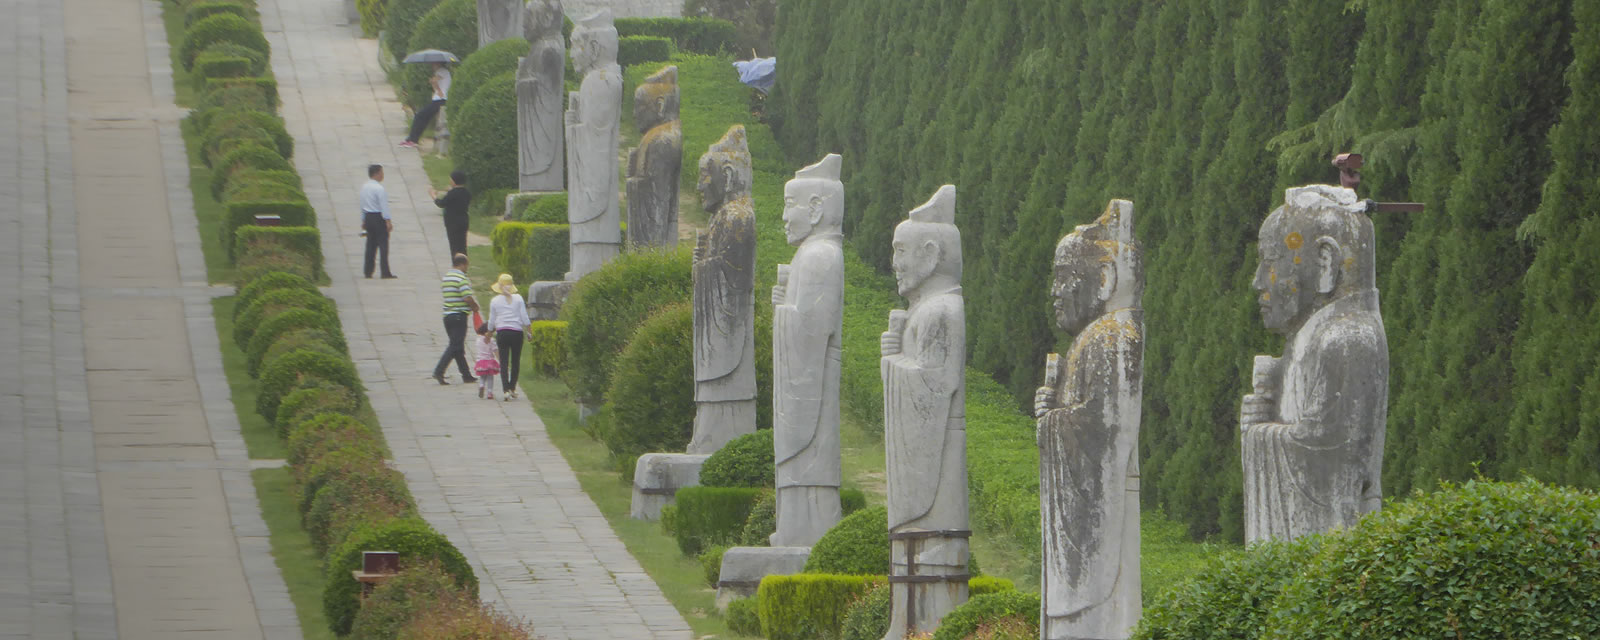 Statues in the Qianling mausoleum